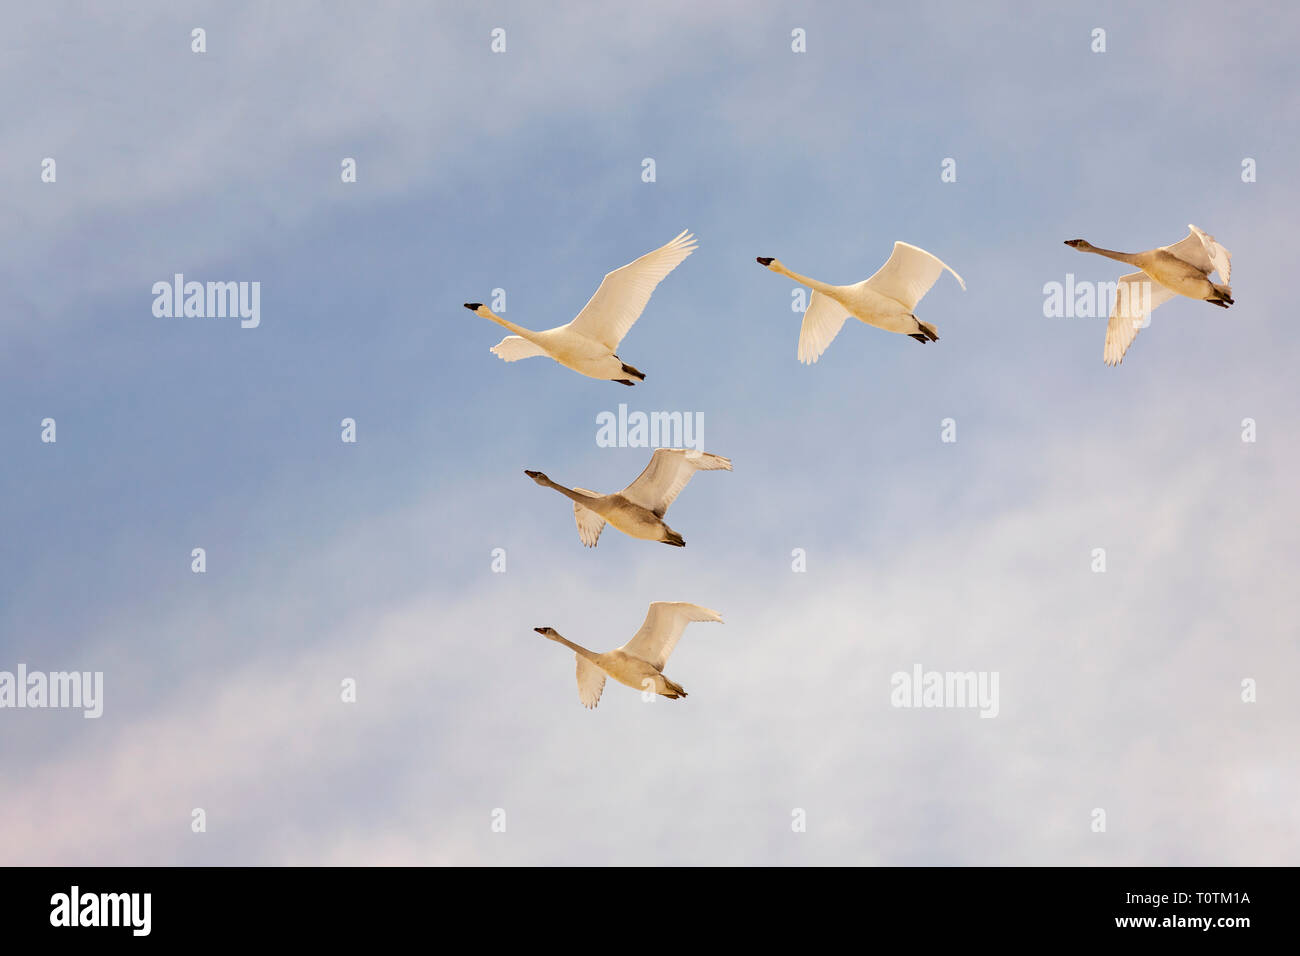 Trumpeter swans flying together in a V formation with a beautiful blue and cloudy sky - Stock Image